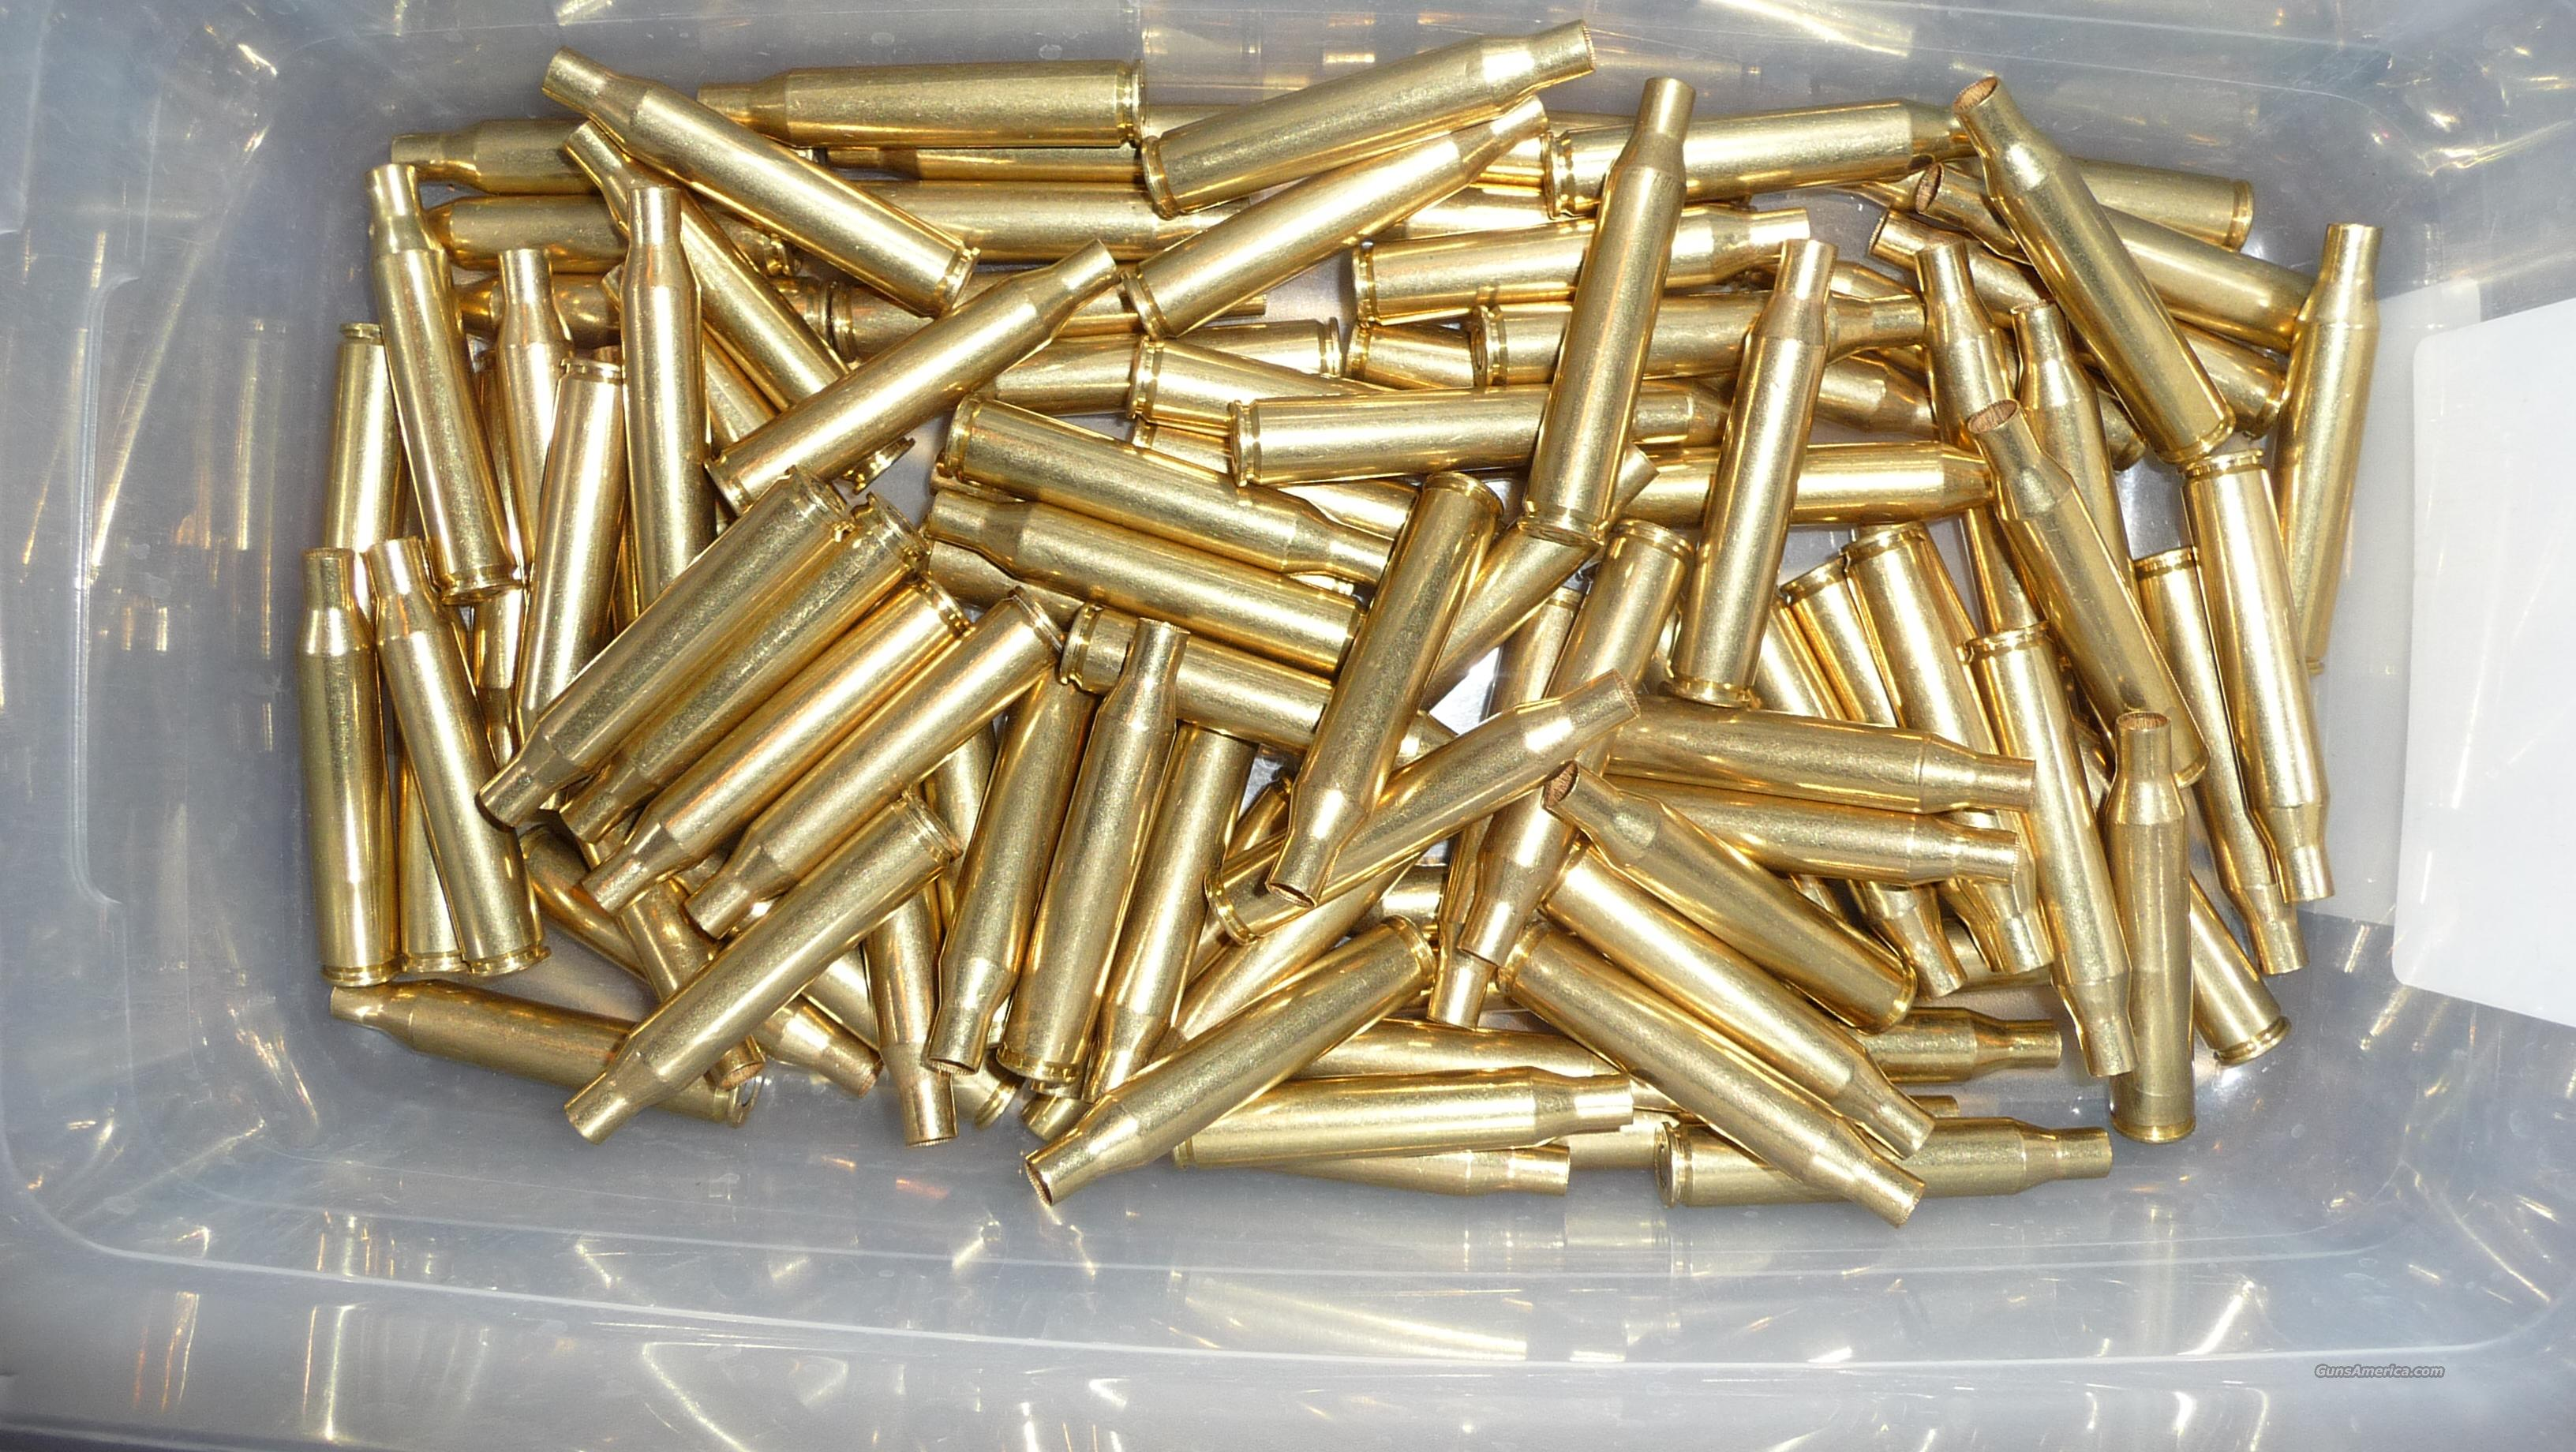 100 new primed Federal brass cases for 25-06 Remington  Non-Guns > Reloading > Components > Brass